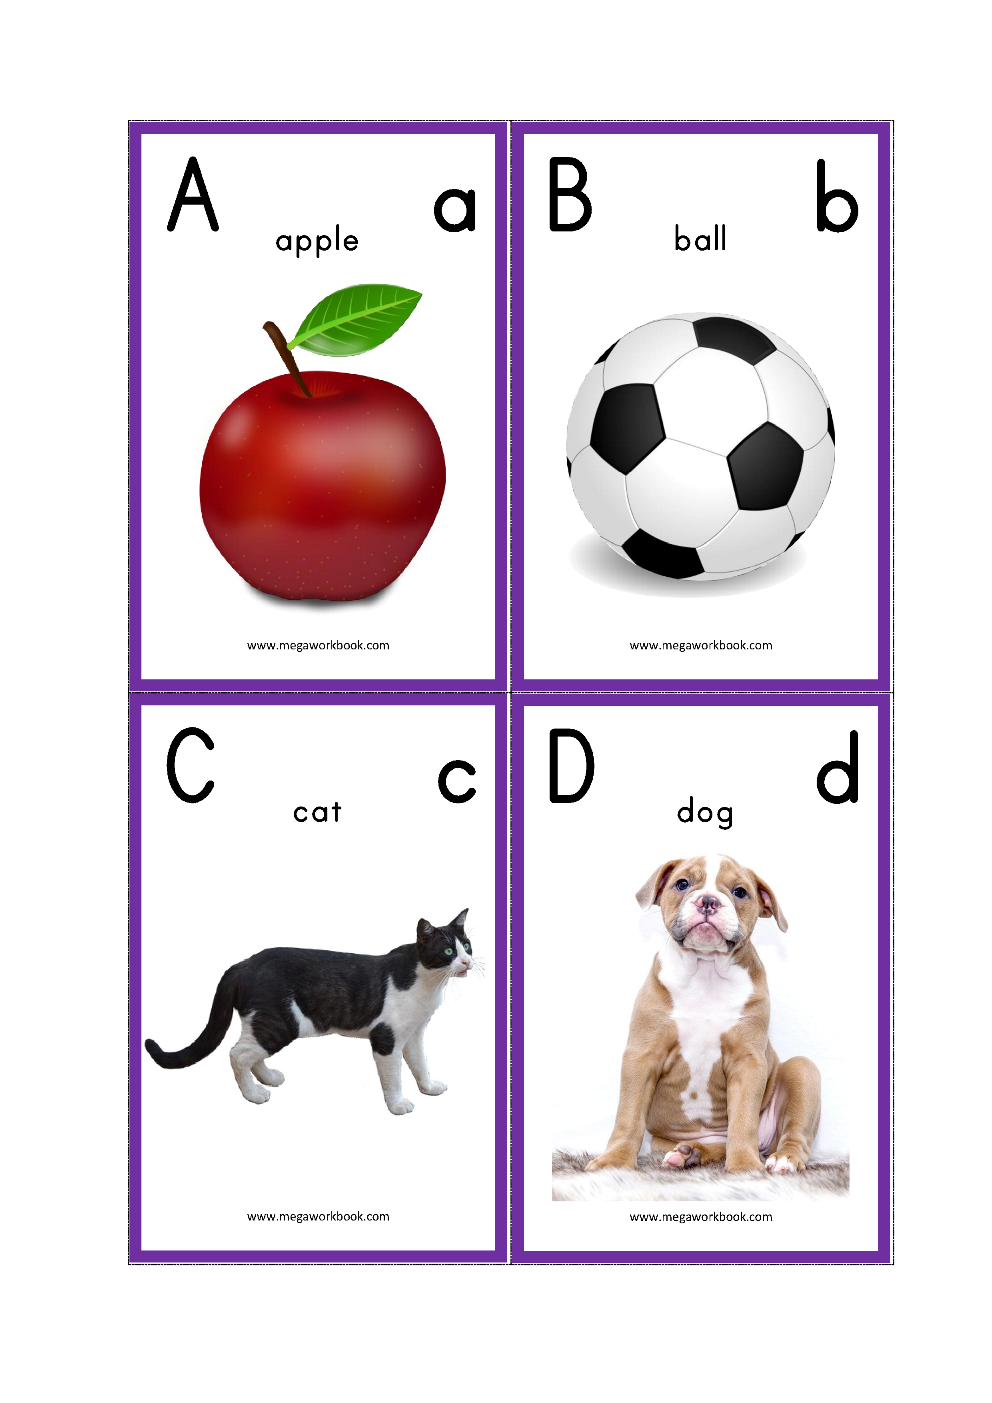 photo relating to Printable Abc Flash Cards referred to as Alphabet Flash Playing cards - ABC Flash Playing cards - Letter Flashcards